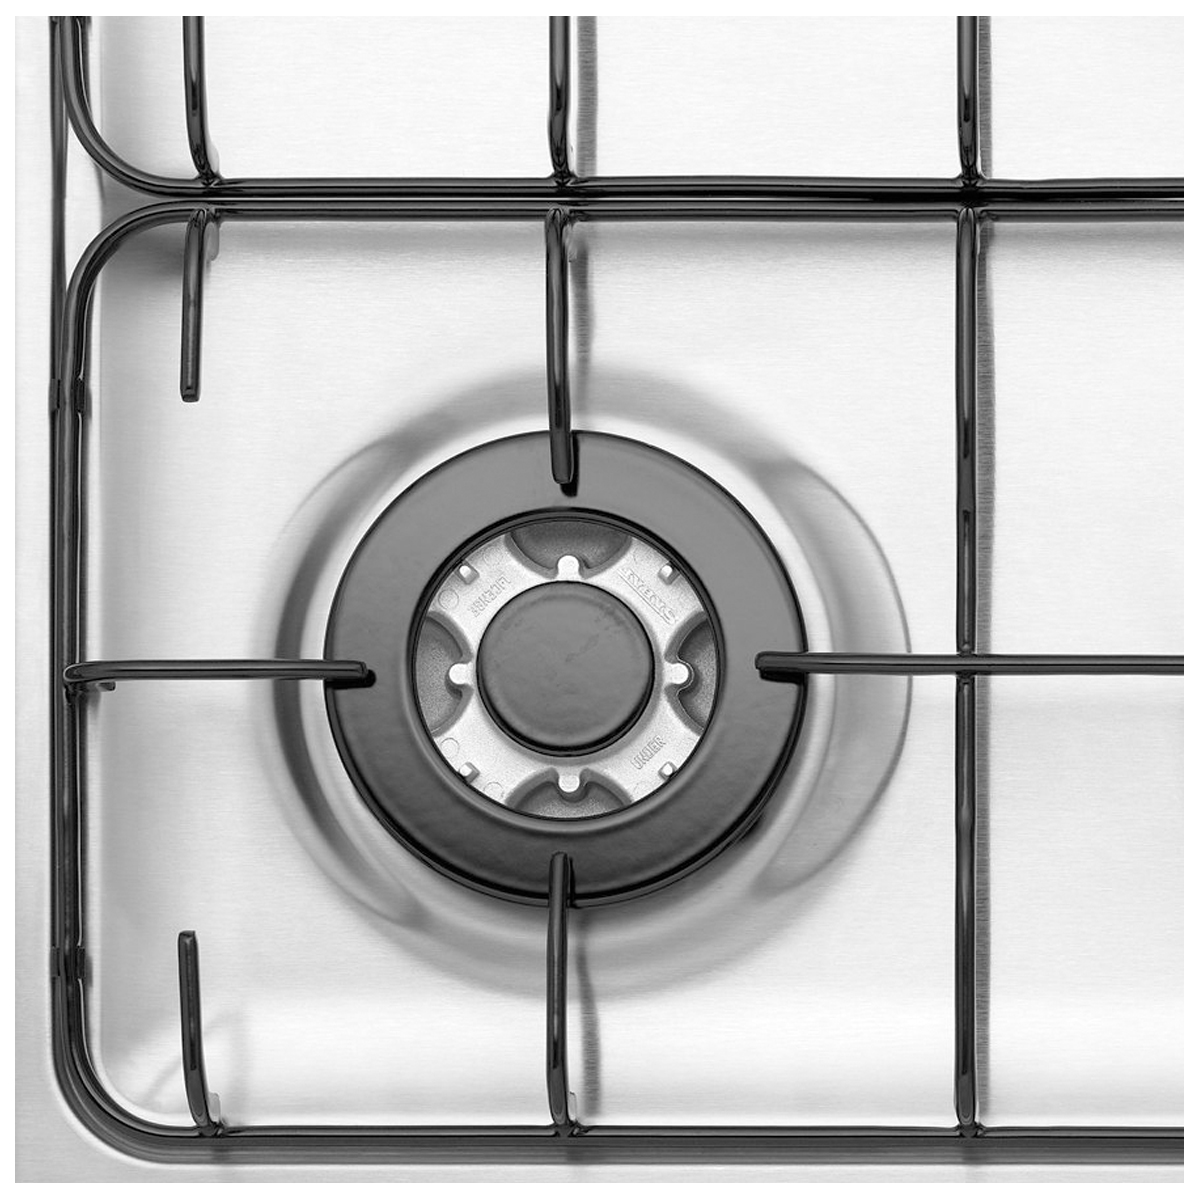 Chef GHC617S Gas Cooktop 145600